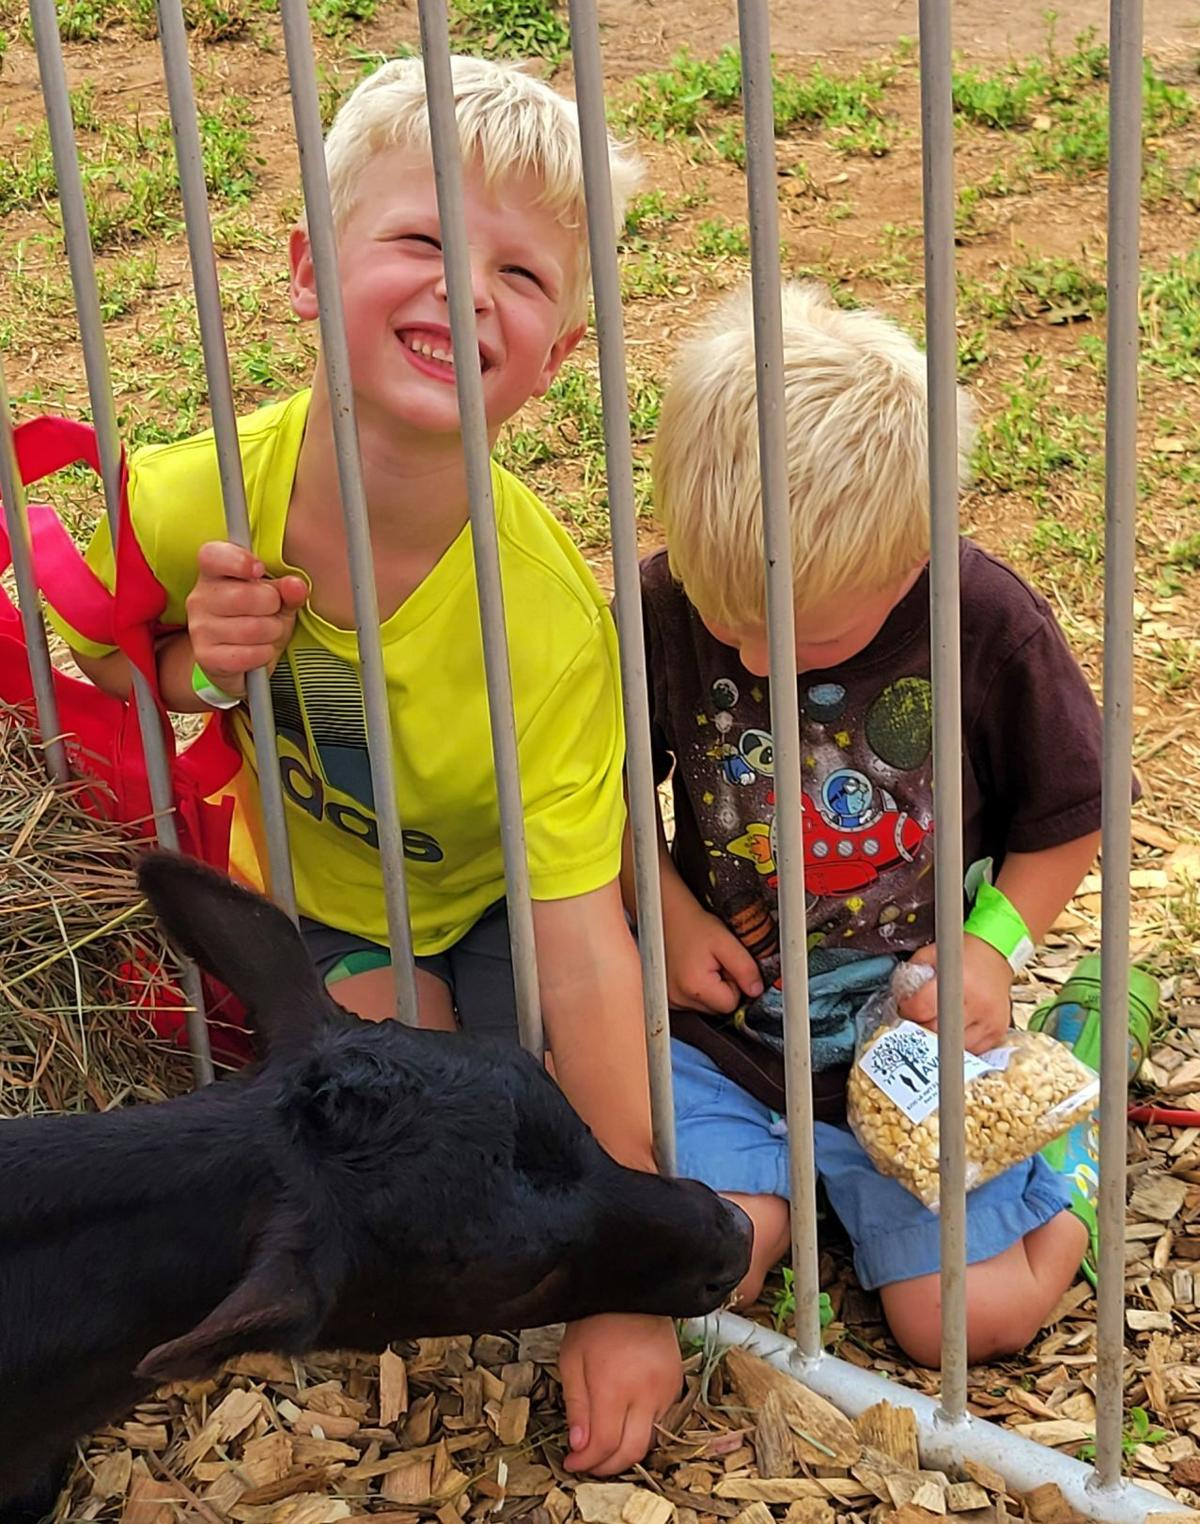 Boys playing with calf